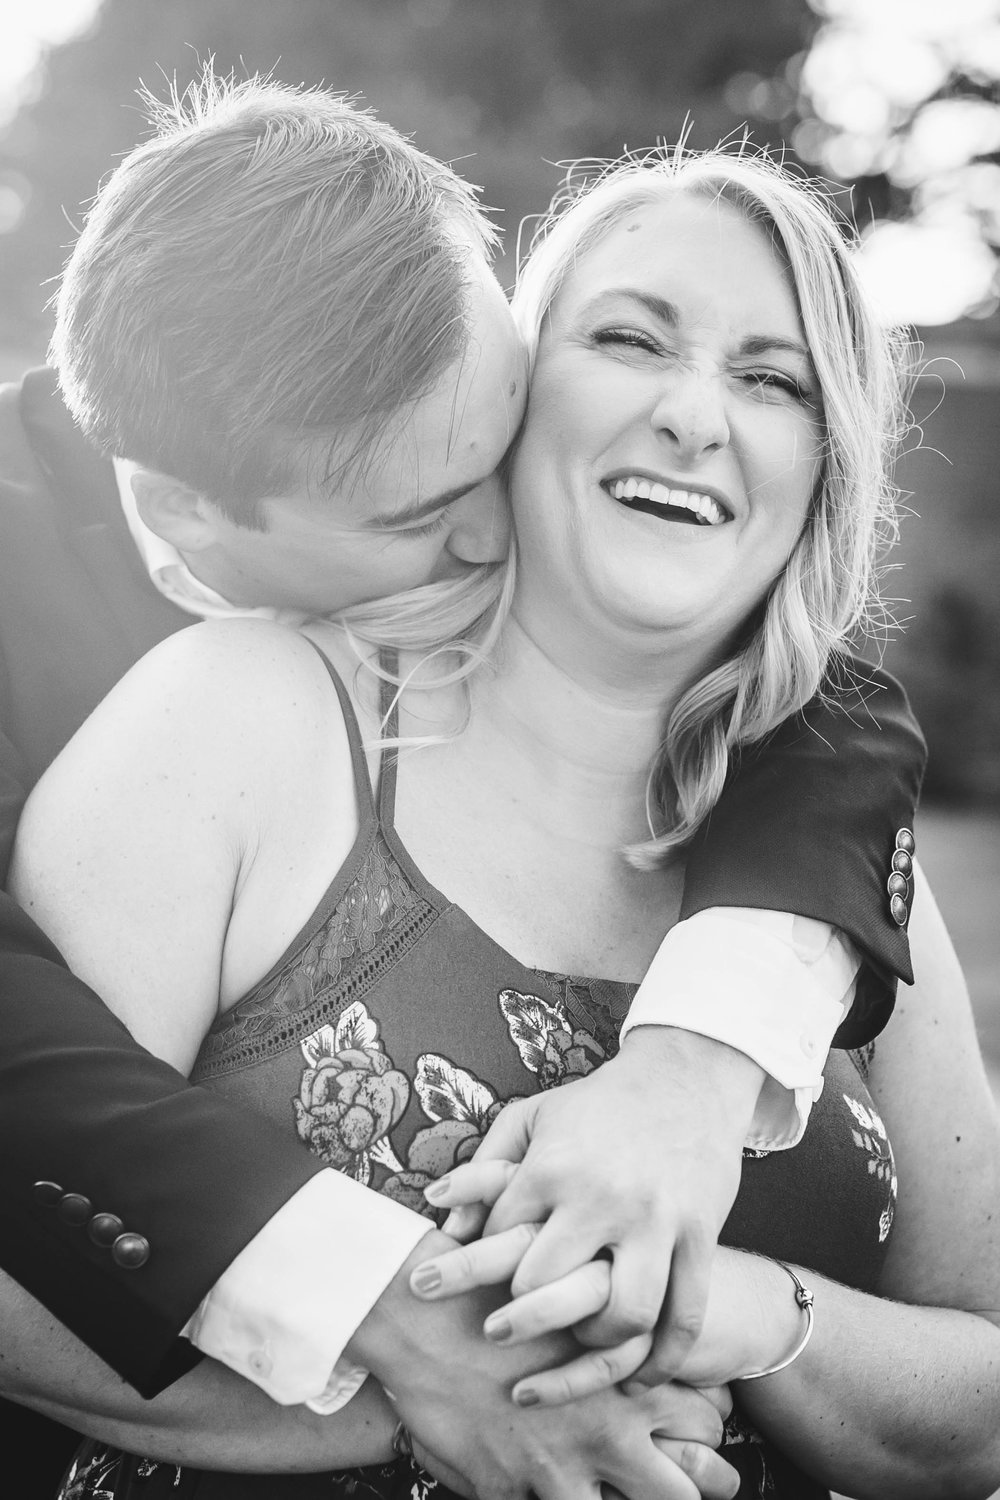 Beverly Lynch Park Rose Garden Engagement Session - Emily Tebbetts Photography-22.jpg